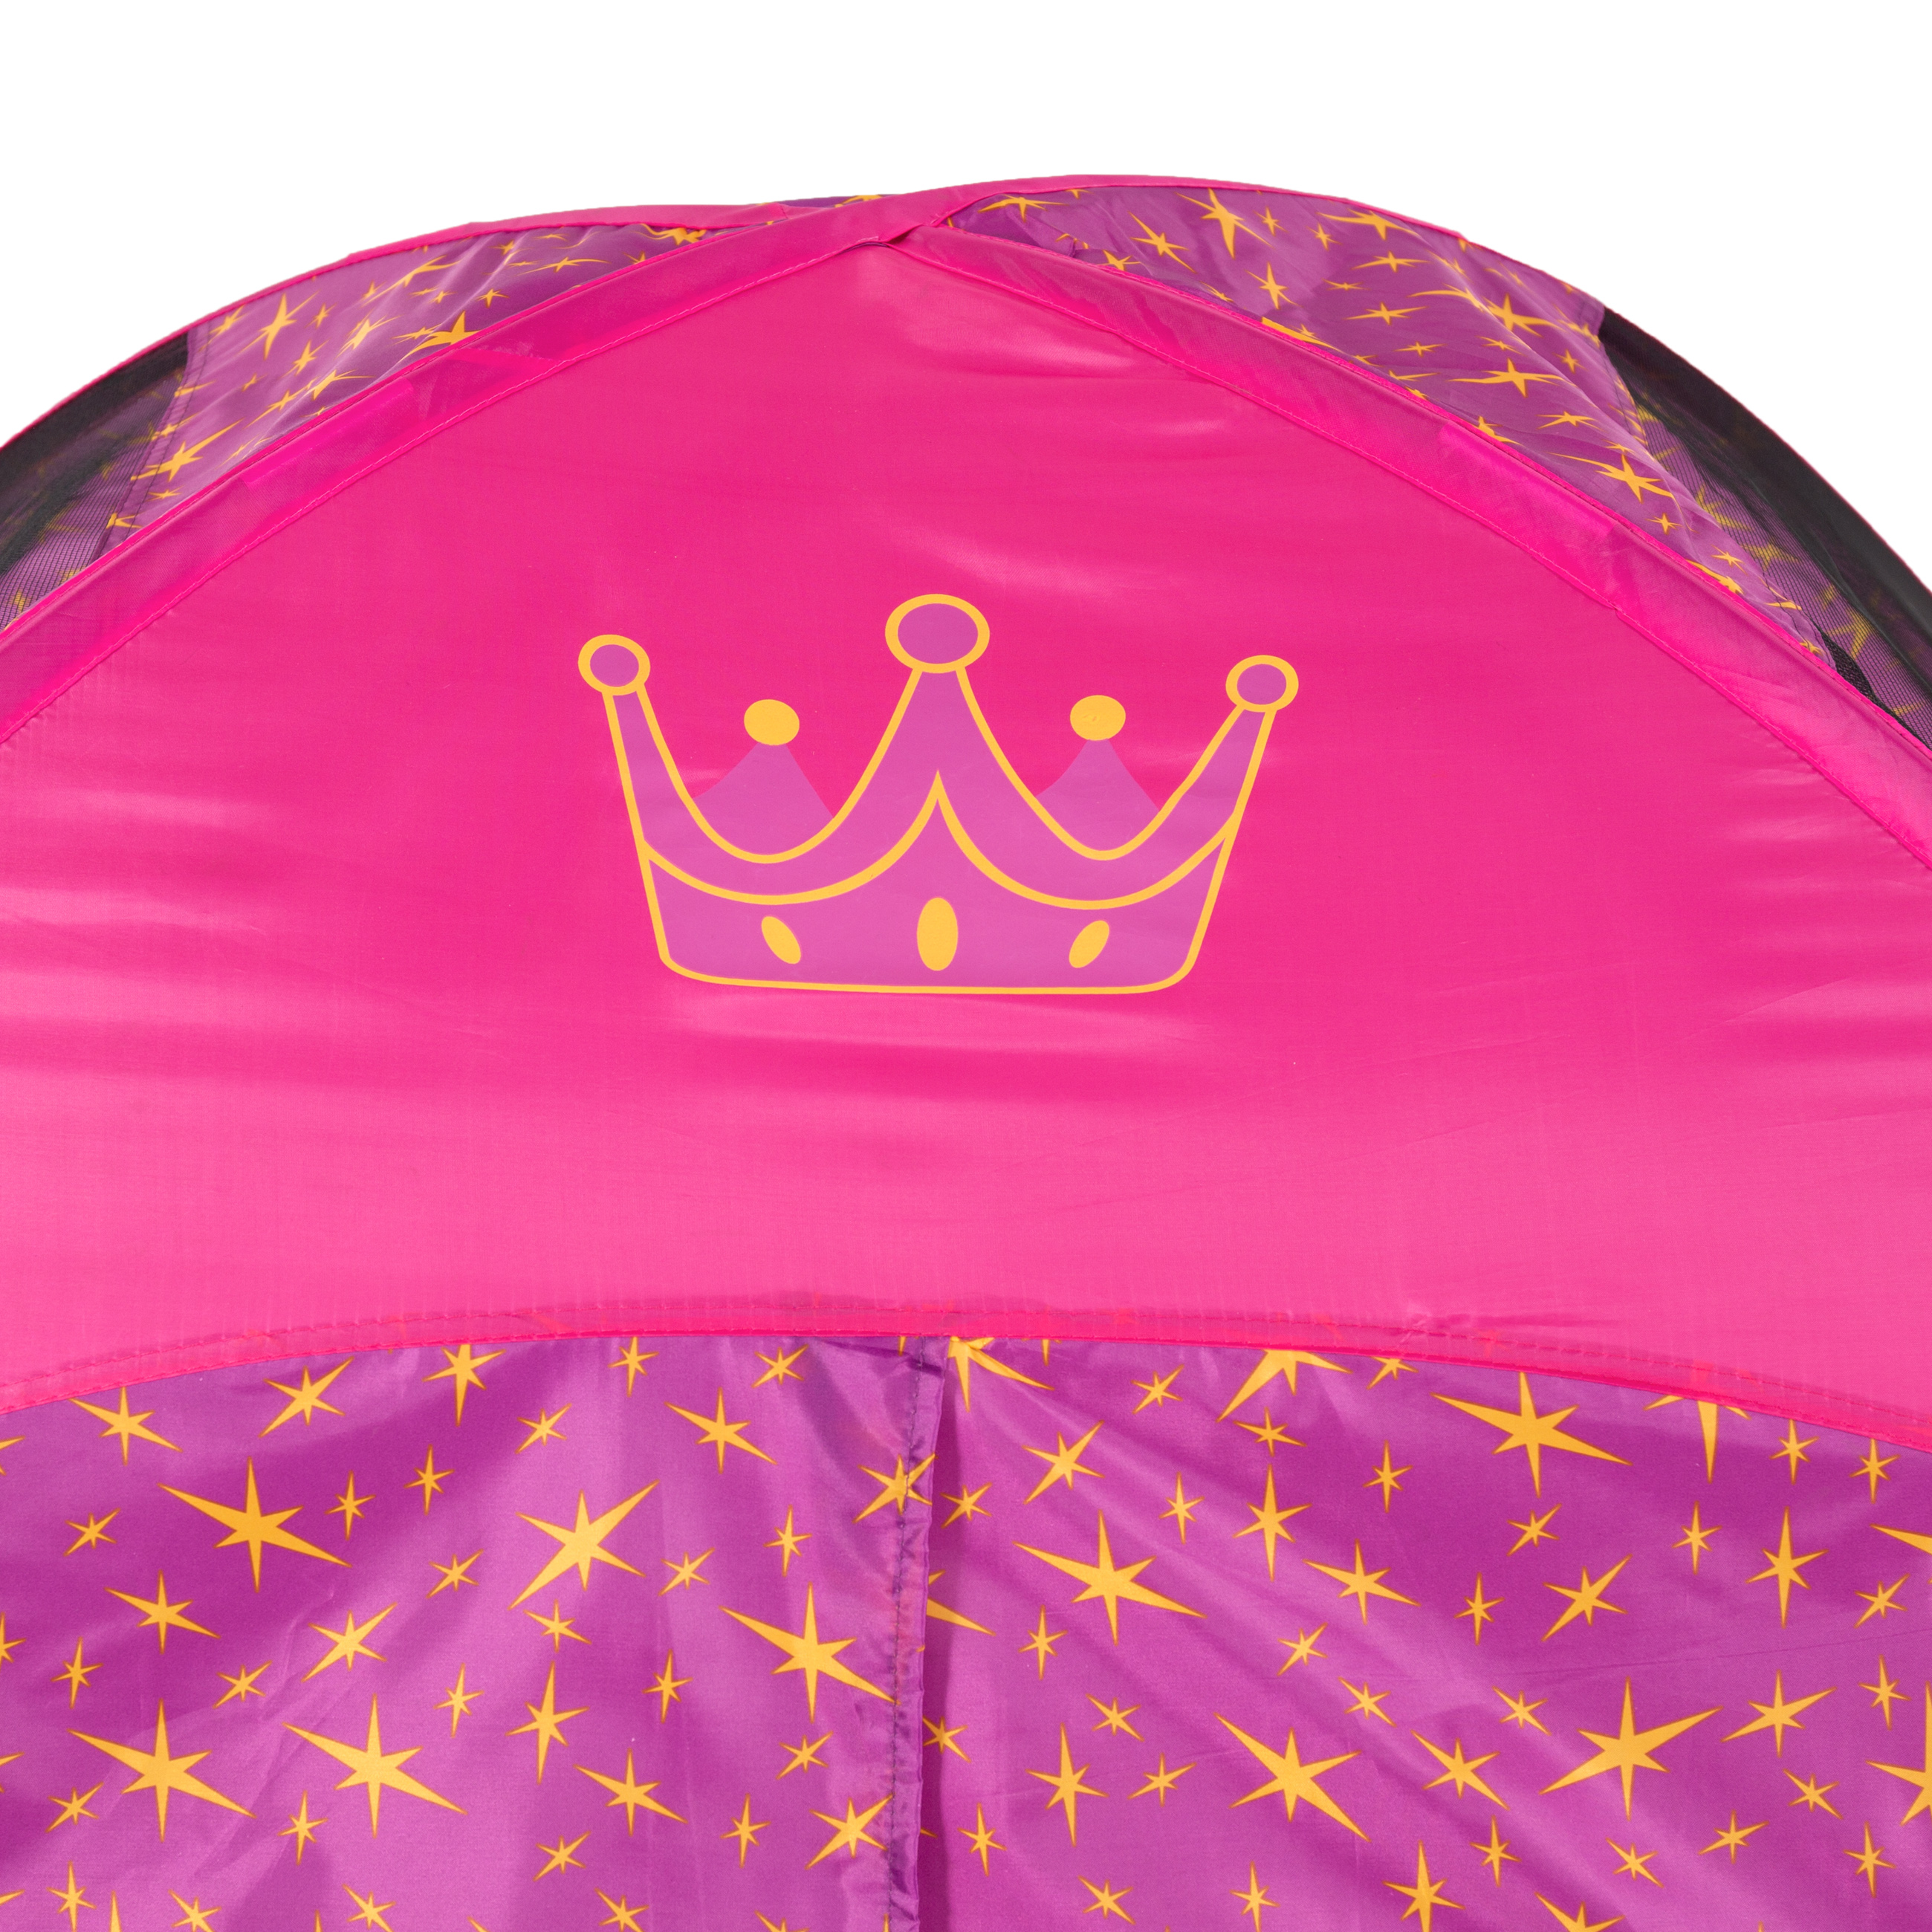 Best Choice Products BCP Pink Princess Full Size Bed Tent Kidu0027s Fantasy Easy Set Up Play  sc 1 st  Walmart & Best Choice Products BCP Pink Princess Full Size Bed Tent Kidu0027s ...